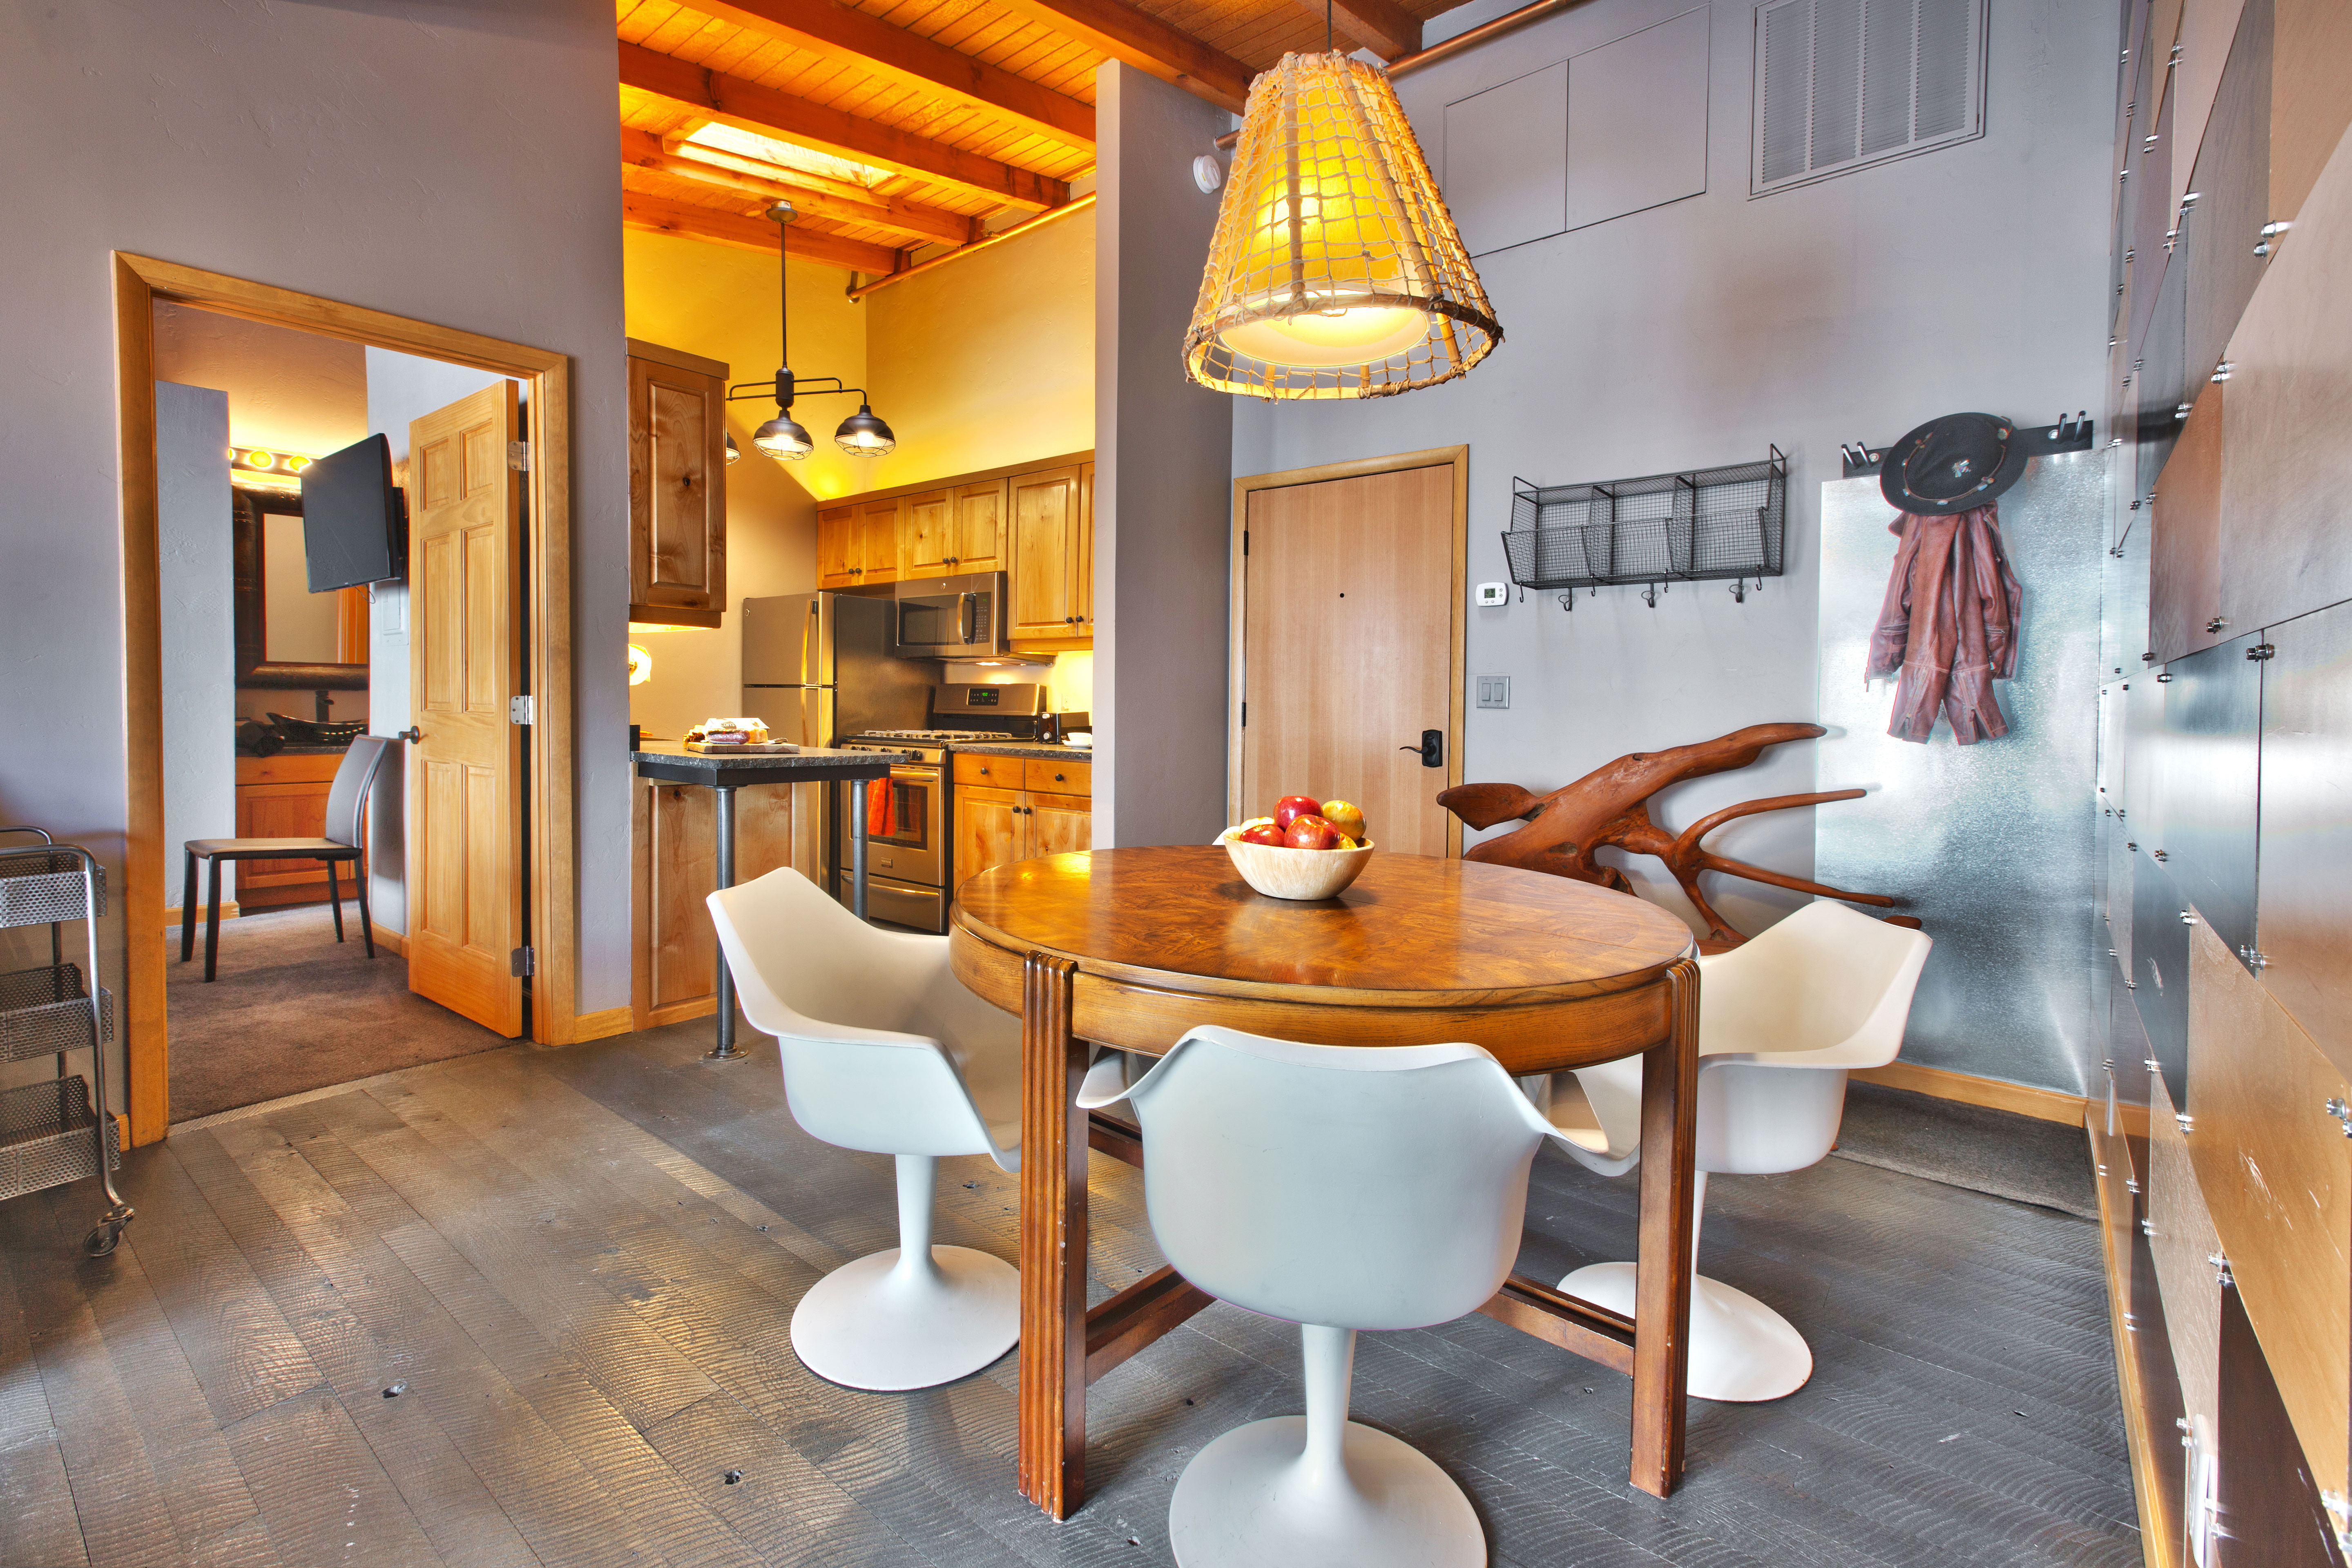 Heretic Condos Park City Unit 2, 2 Bedroom, 2 Bath, Dining Room And